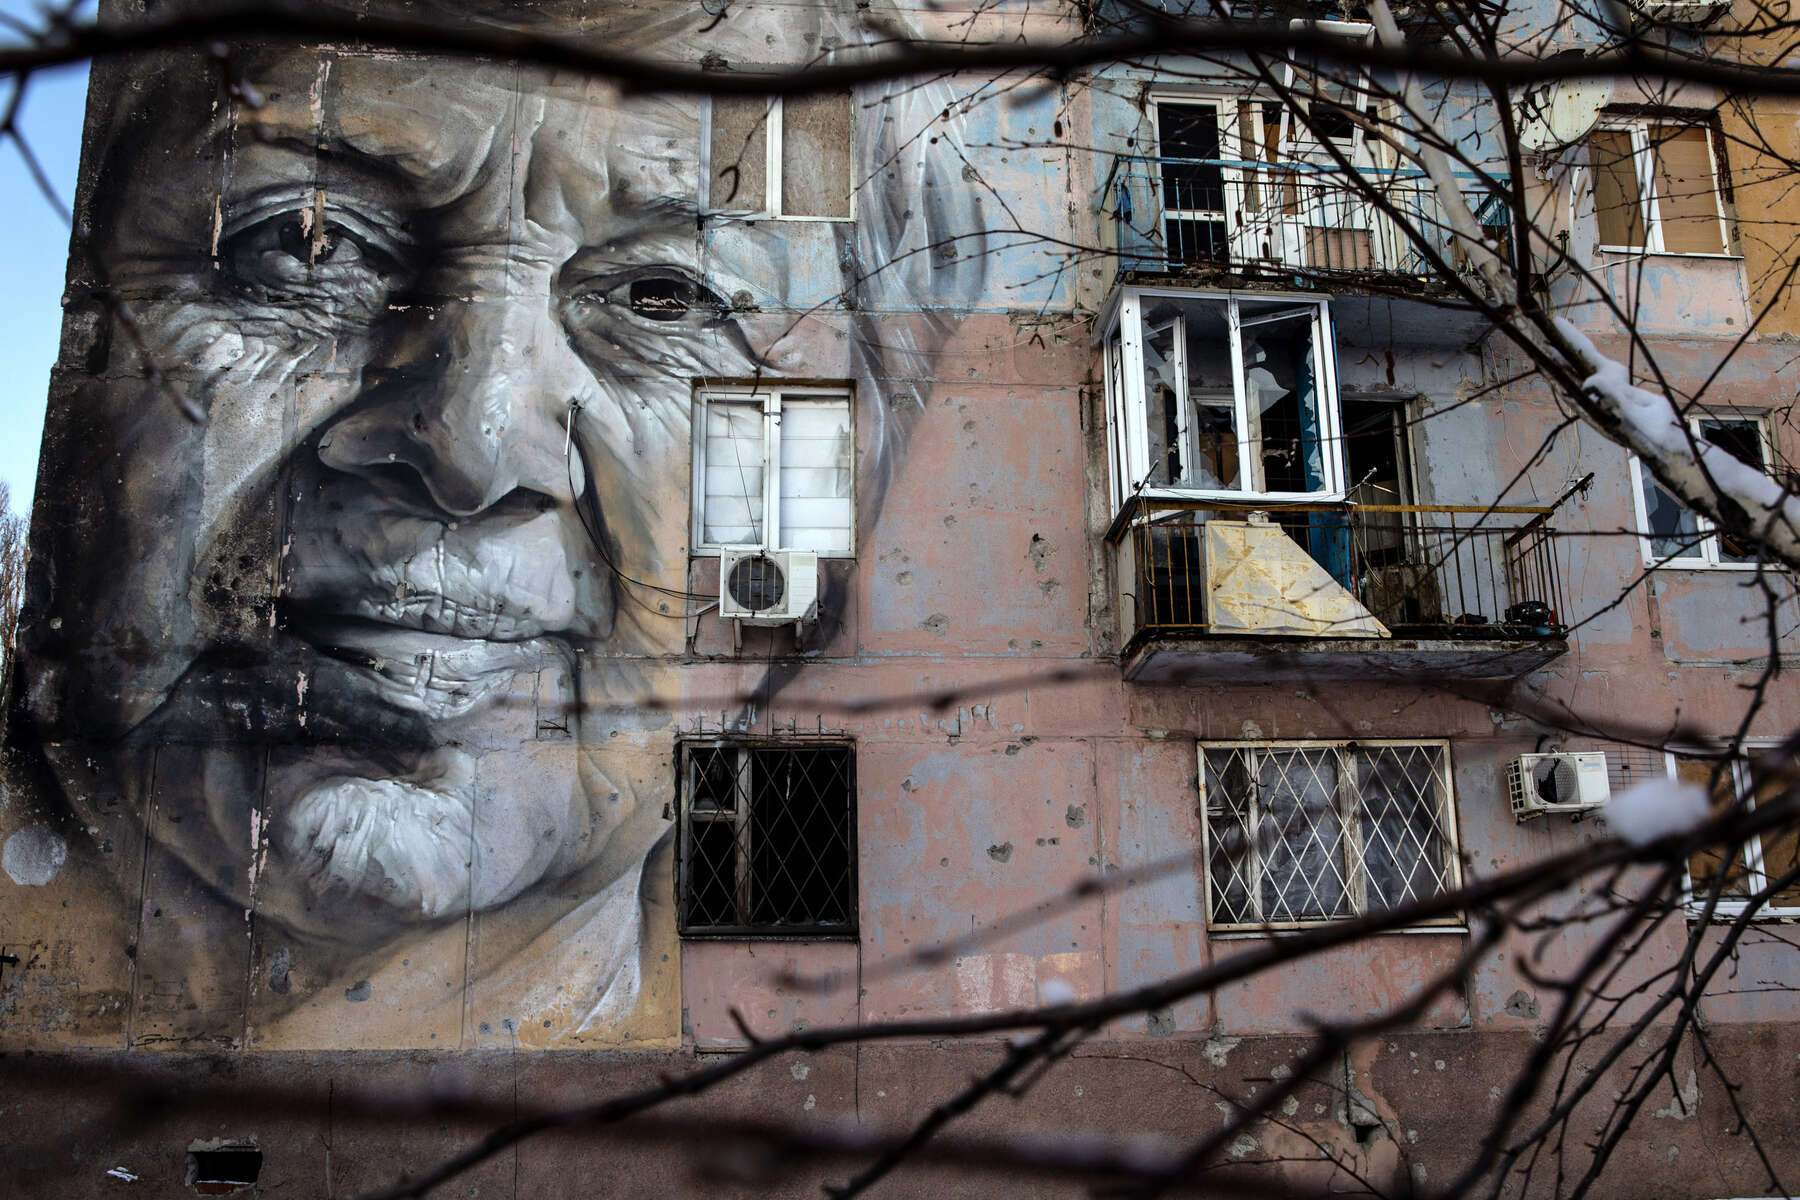 Avdiivka : A portrait of an elderly woman named Marina  Marchenko who was a teacher,  painted by an Australian artist  is seen on a war torn building, abandoned  in Avdiivka.After more than six years of war the armed conflict in eastern Ukraine has a human toll that is staggering. Some 200,000 people live under constant fear of shelling every day, with nearly a third of the 3.4 million people in need of humanitarian assistance over 60 years of age. Ukraine has the highest proportion of elderly affected by war in the world.BANGKOK - MARCH  :  in Taipei, Taiwan on March 19, 2020. According to CDC current totals the Coronavirus ( COVID-19) has now effected 235,939 globally, killing 9,874. It has spread to 157 countries. (Photo by Paula Bronstein/Getty Images )